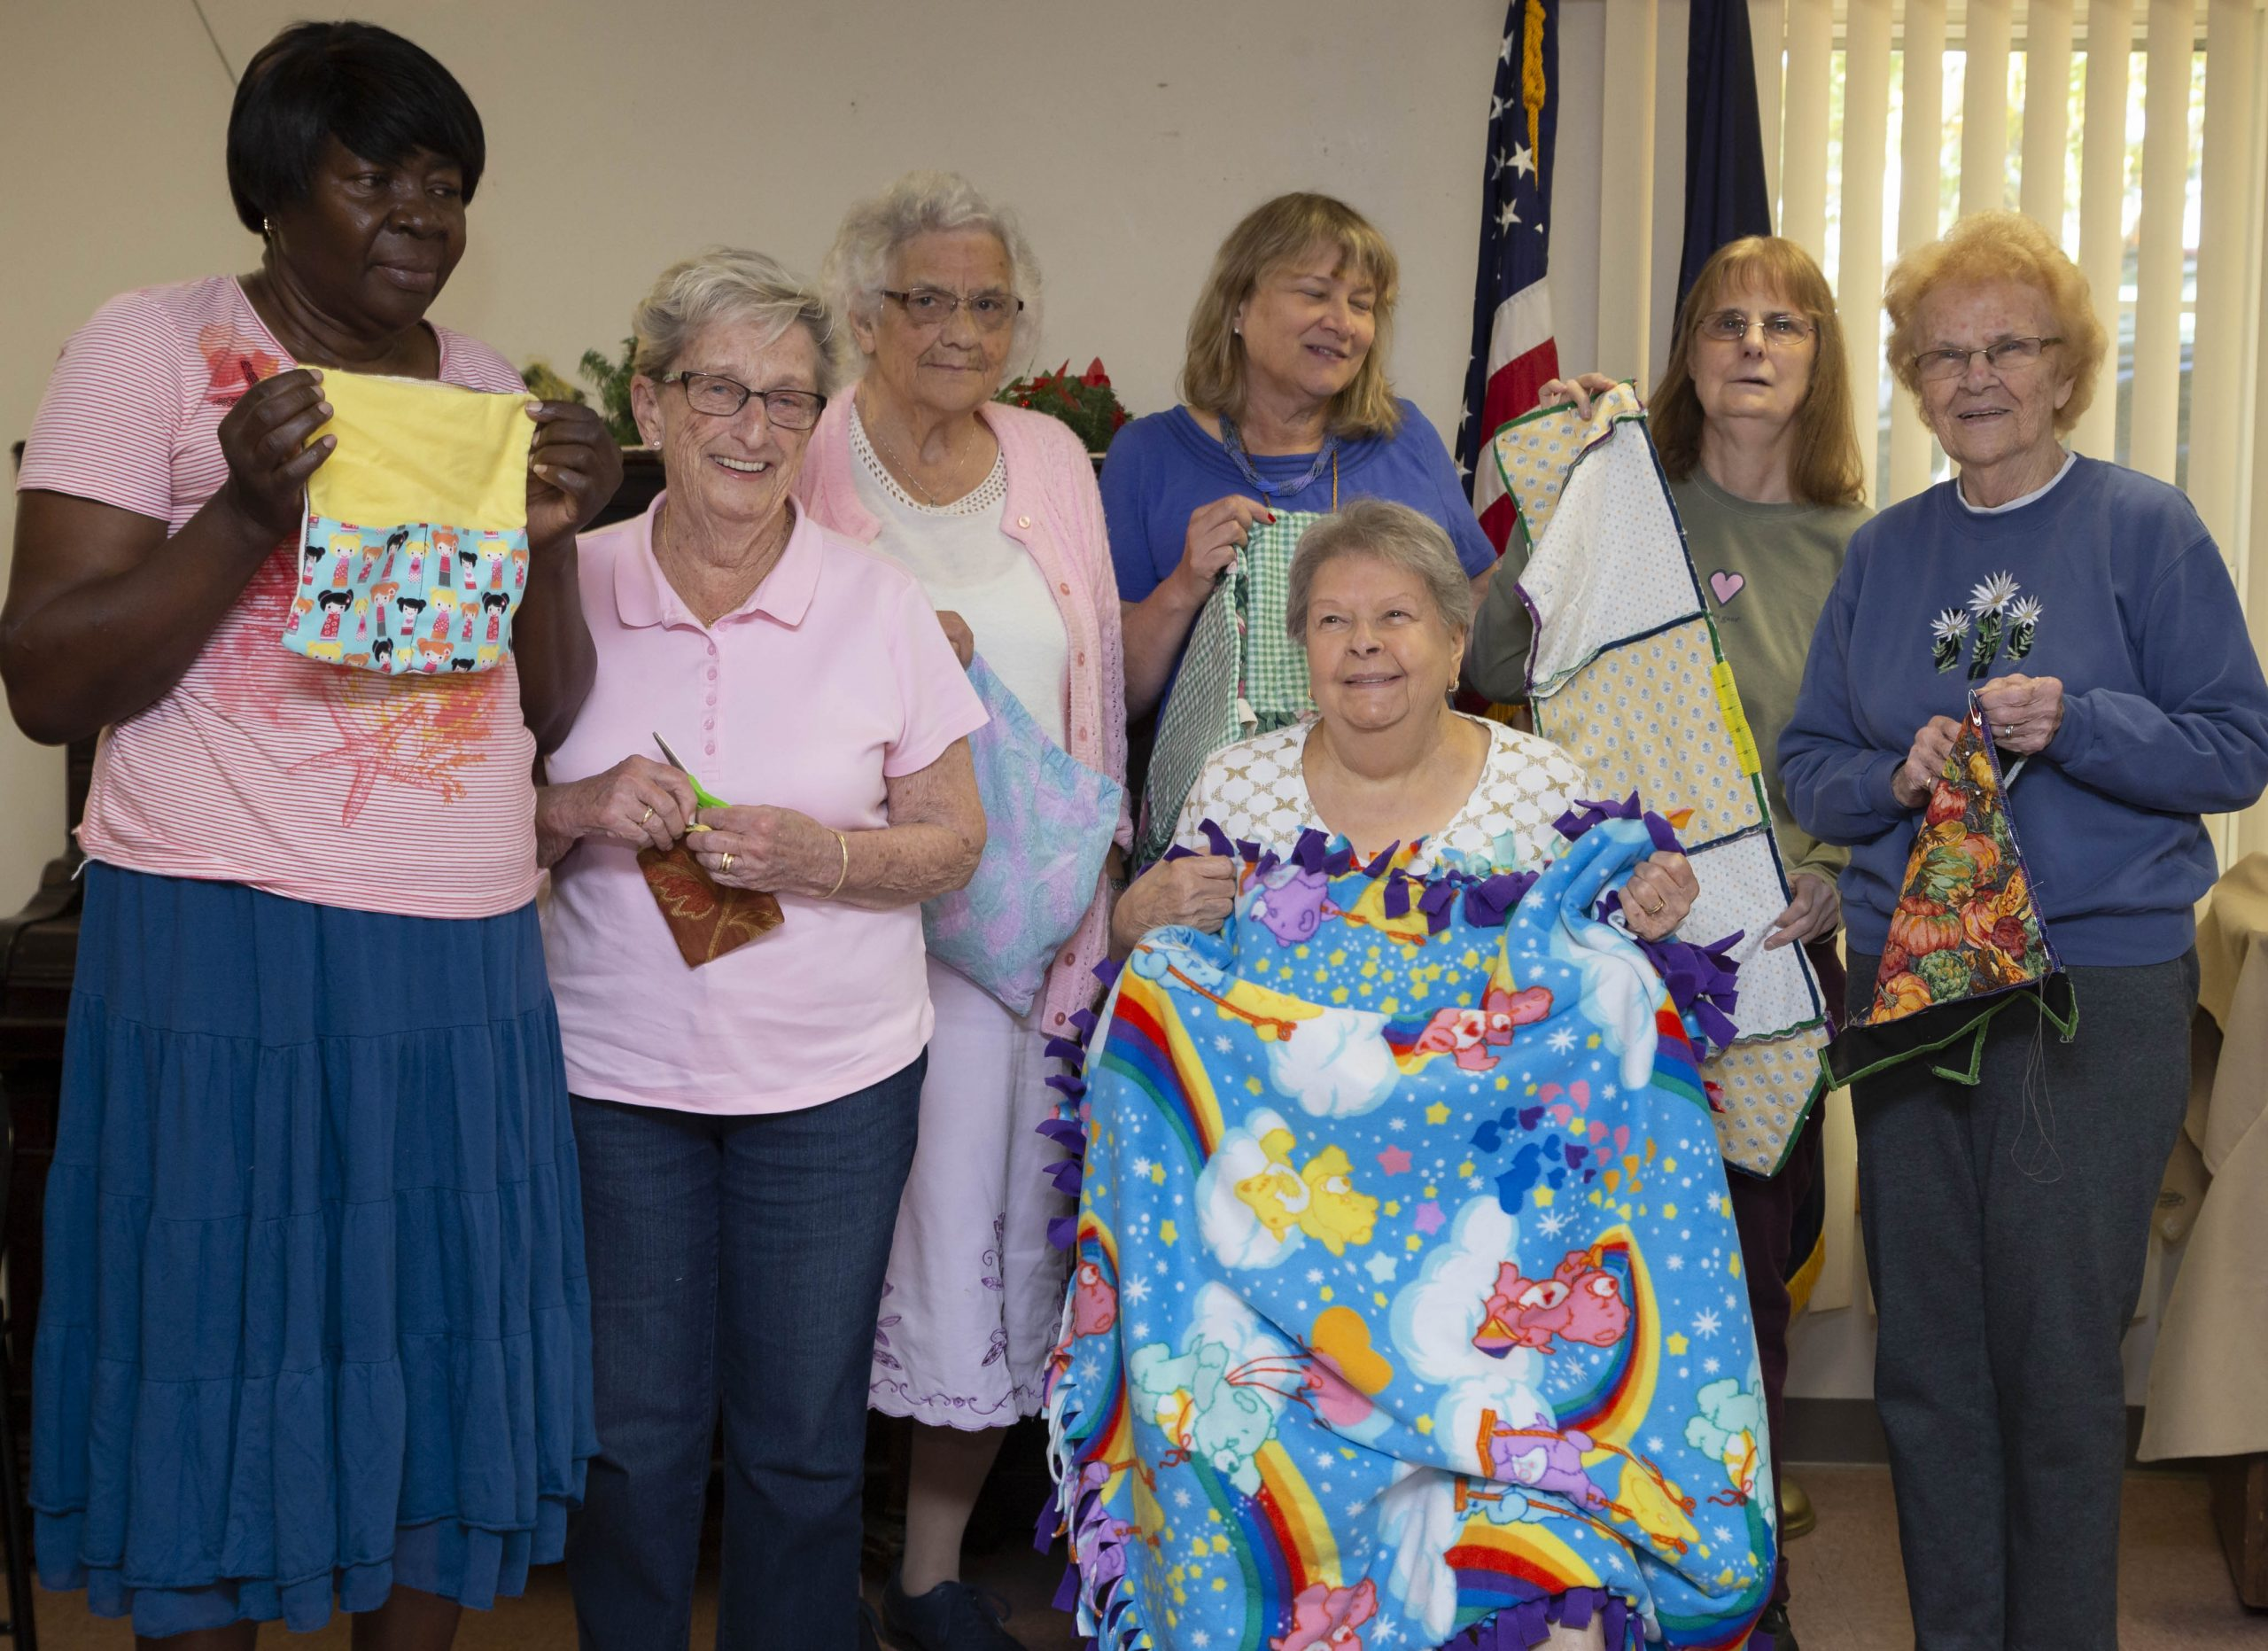 The adaptive sewing group proudly displays their work